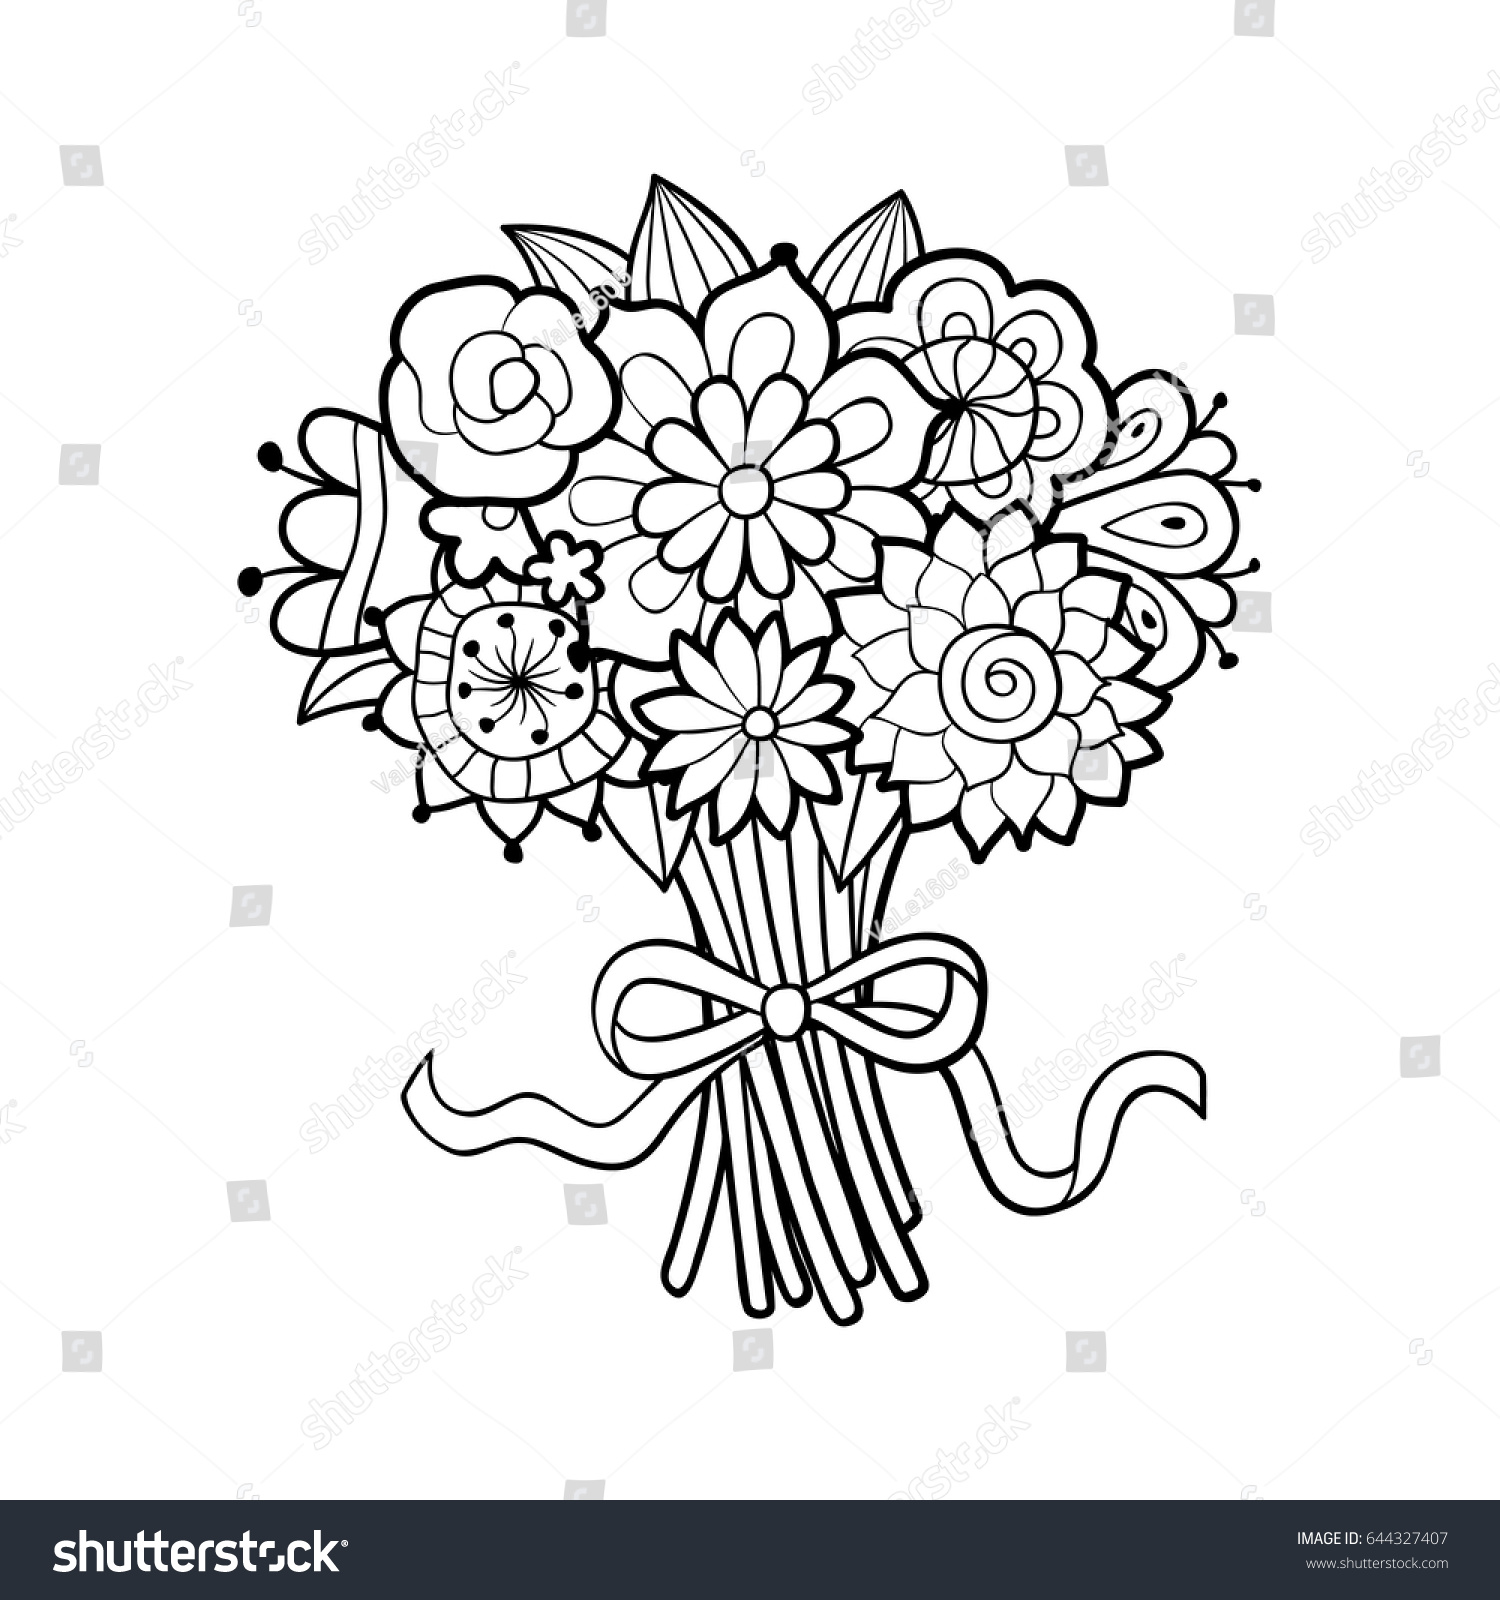 Flower Bouquet Decorated Bow Black White Stock Vector Royalty Free